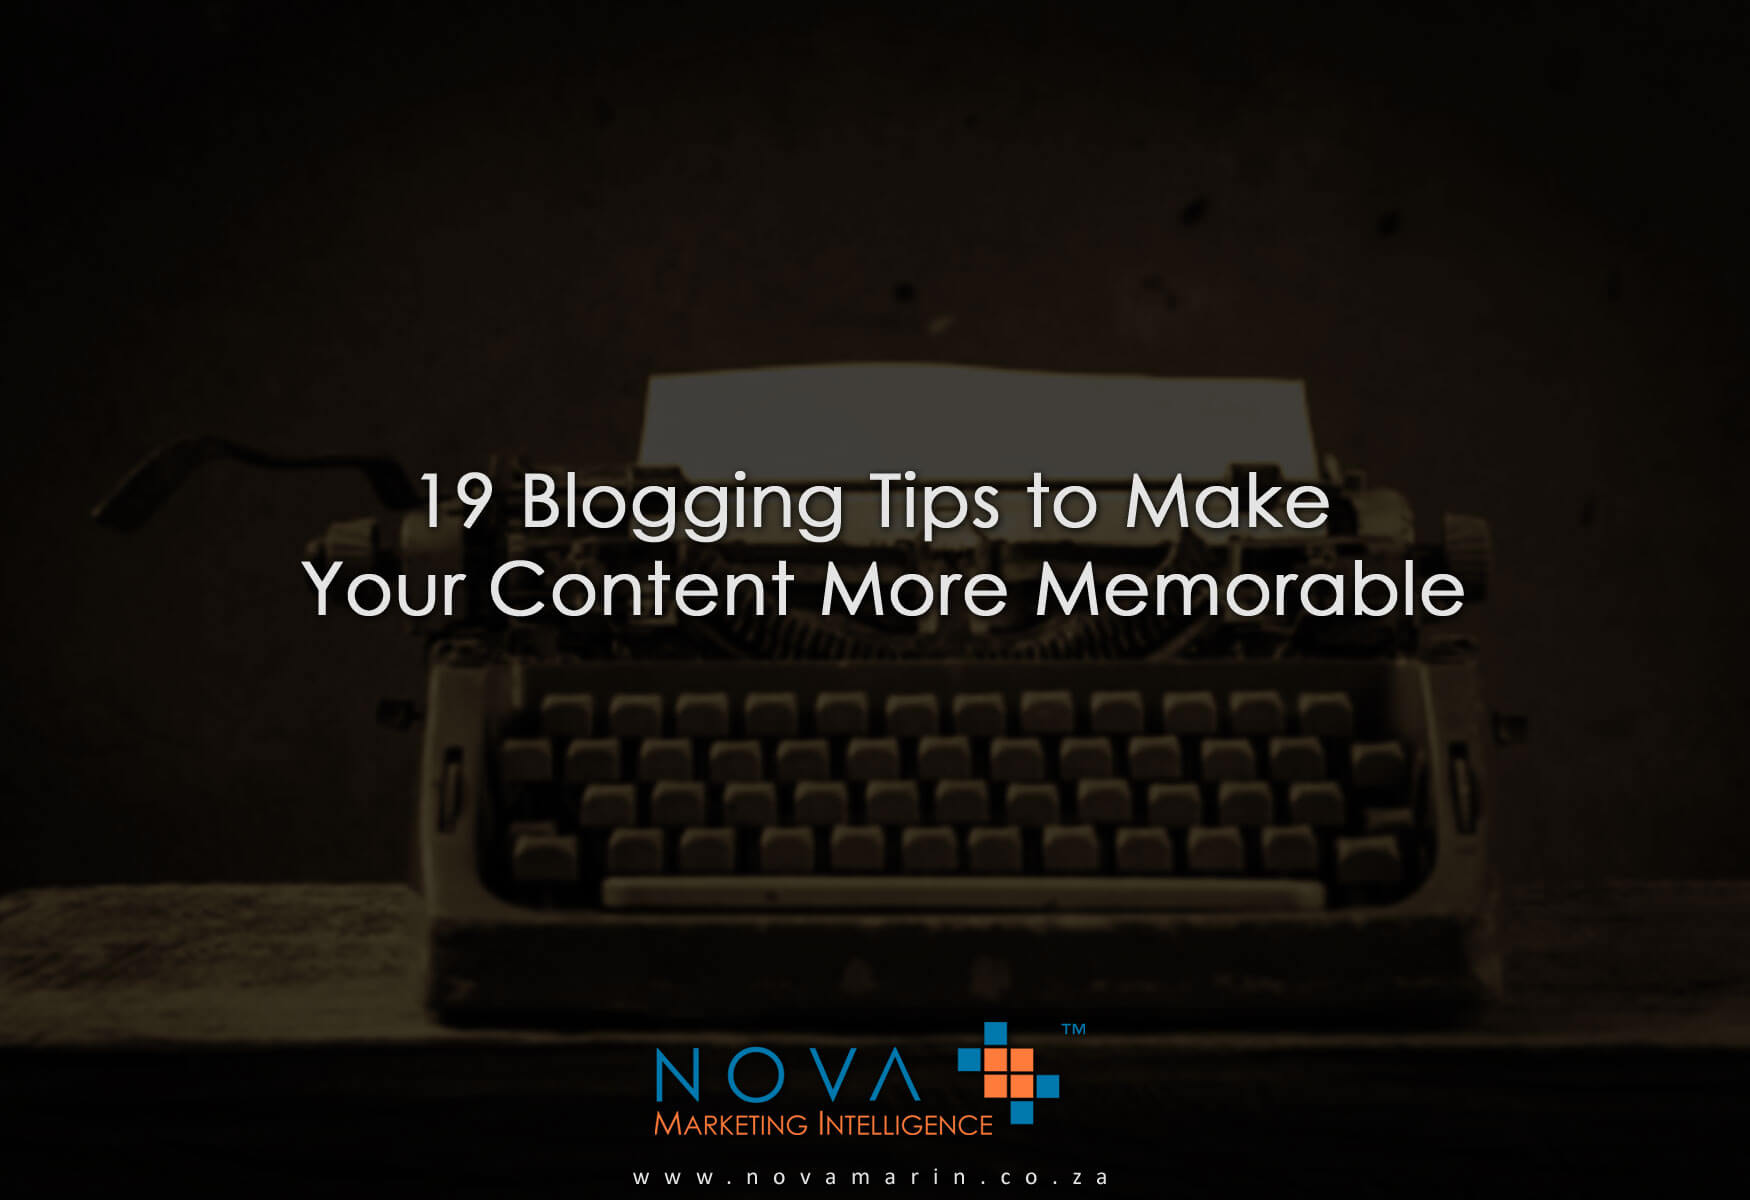 Blogging Tips - 19 Ways to Make Your Content More Memorable